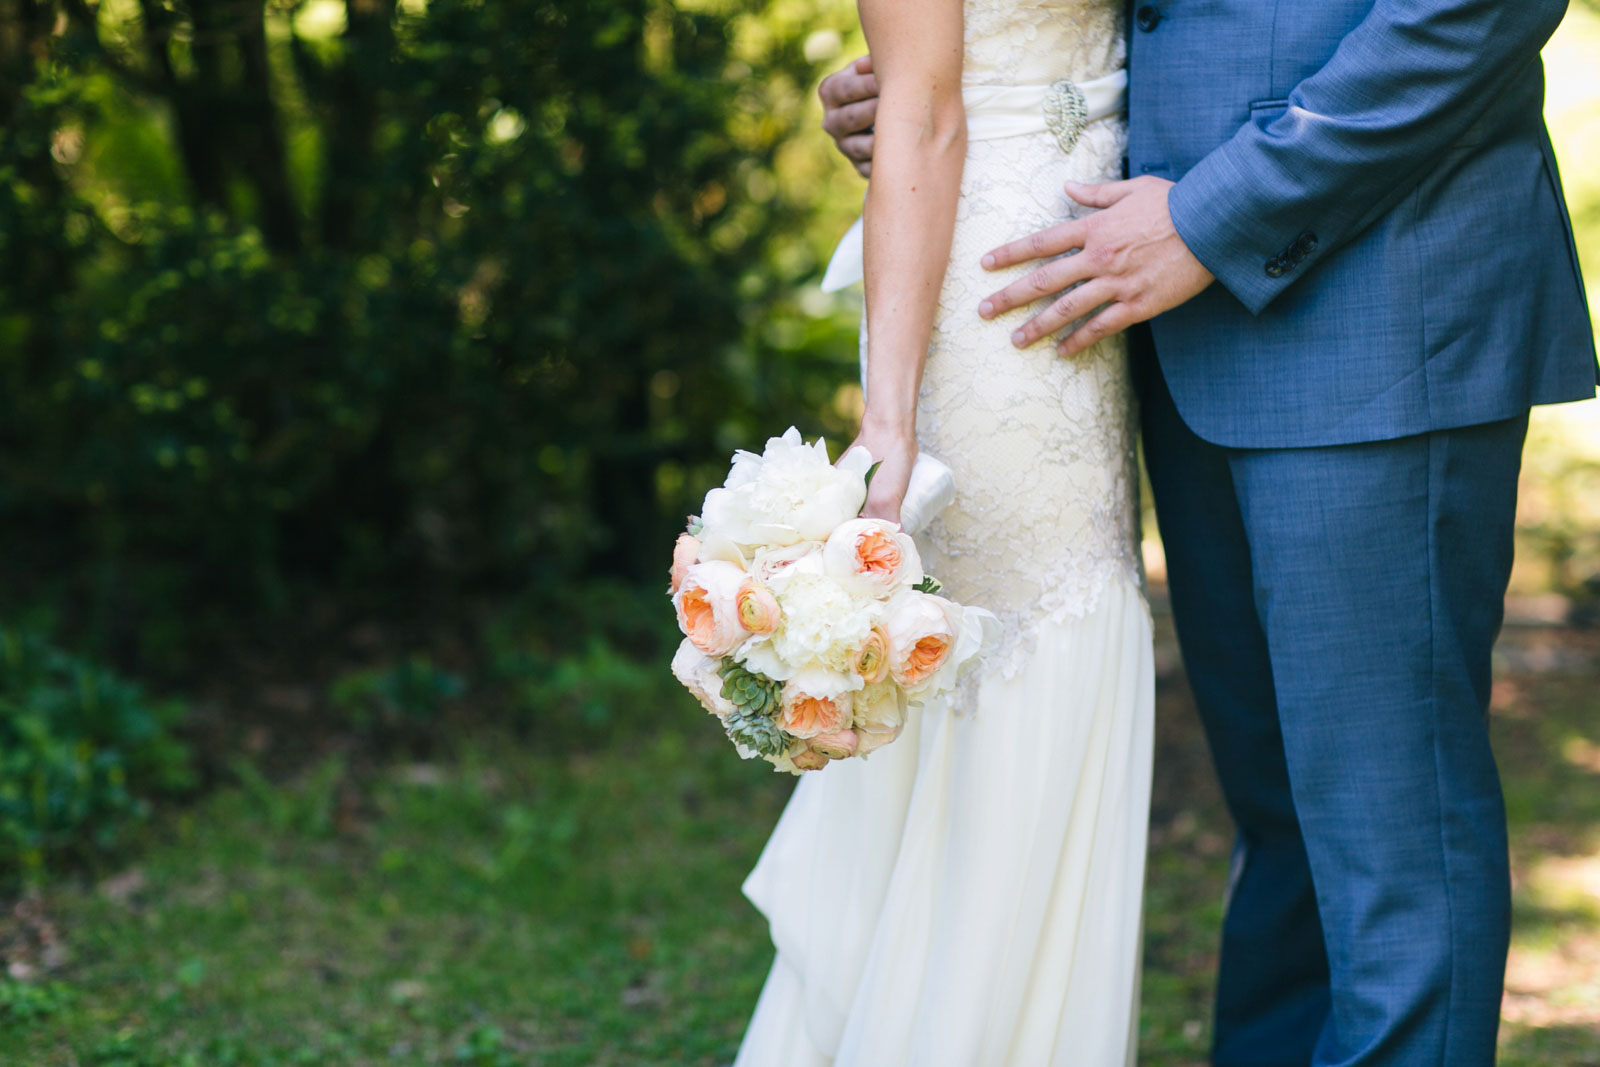 groom holding bride close during their first look, bride holding bouquet with light peach peonies